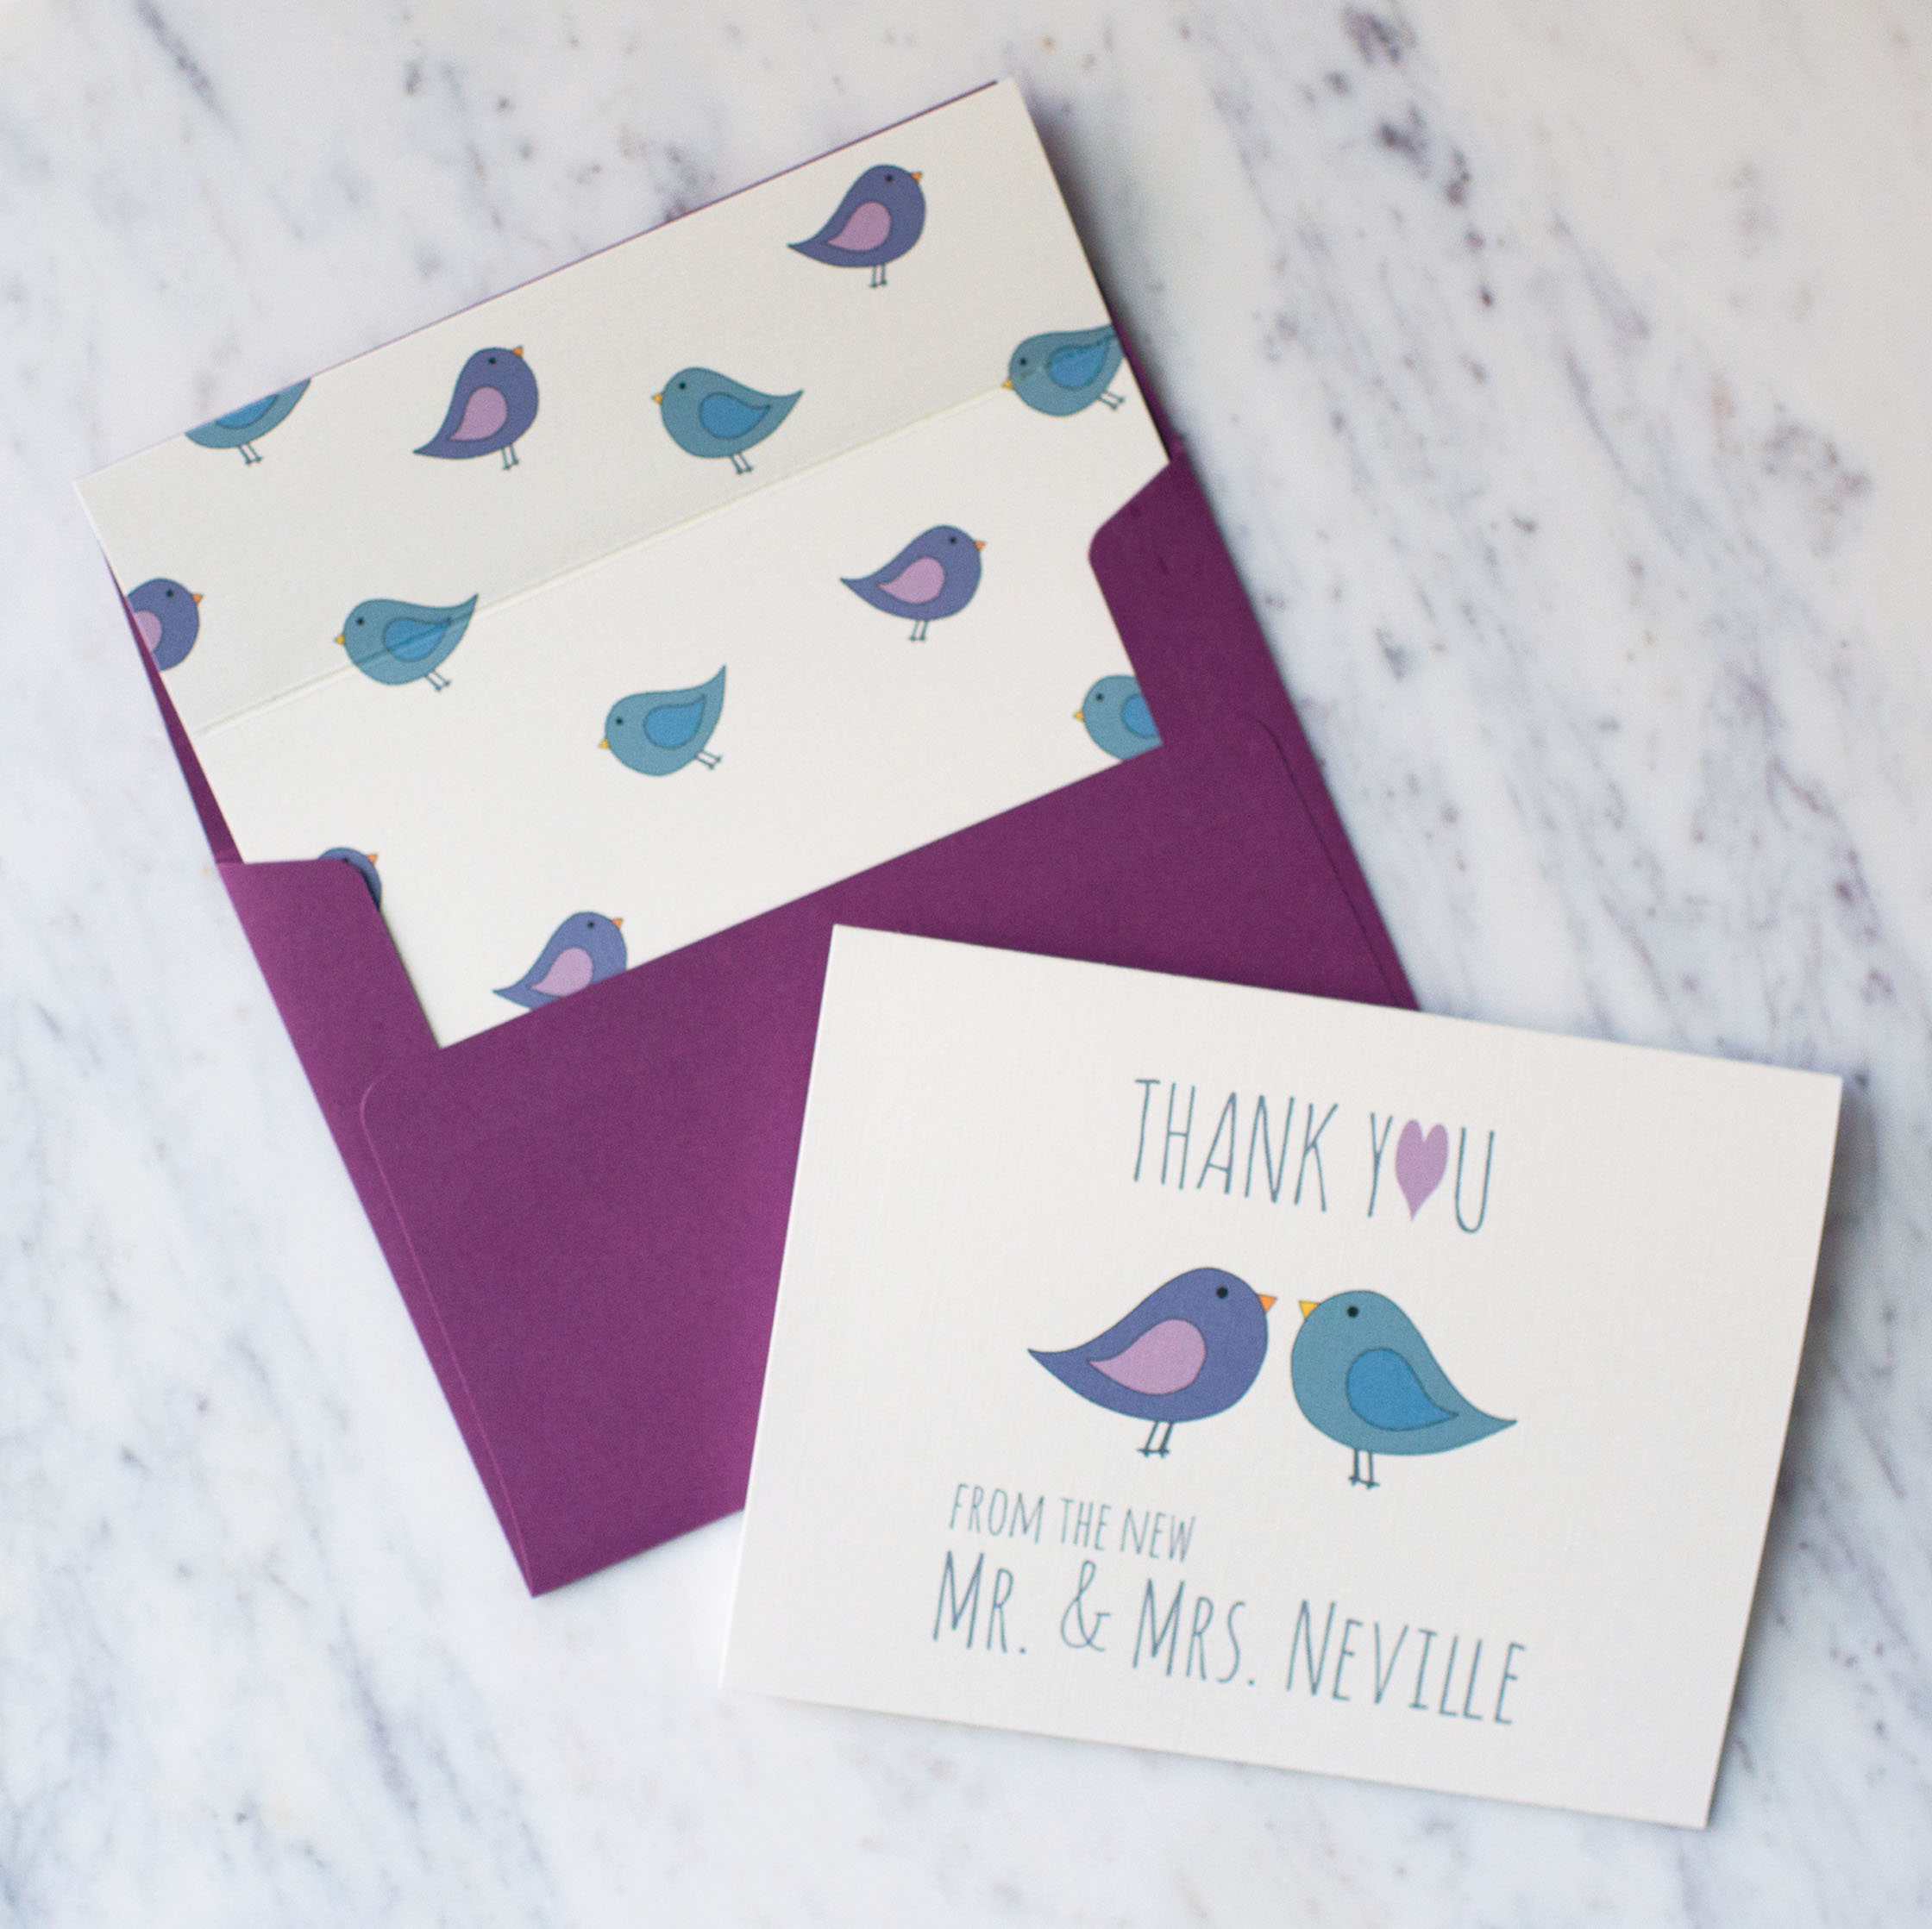 Thank You From The New Love Birds Stationery Set in Ivory